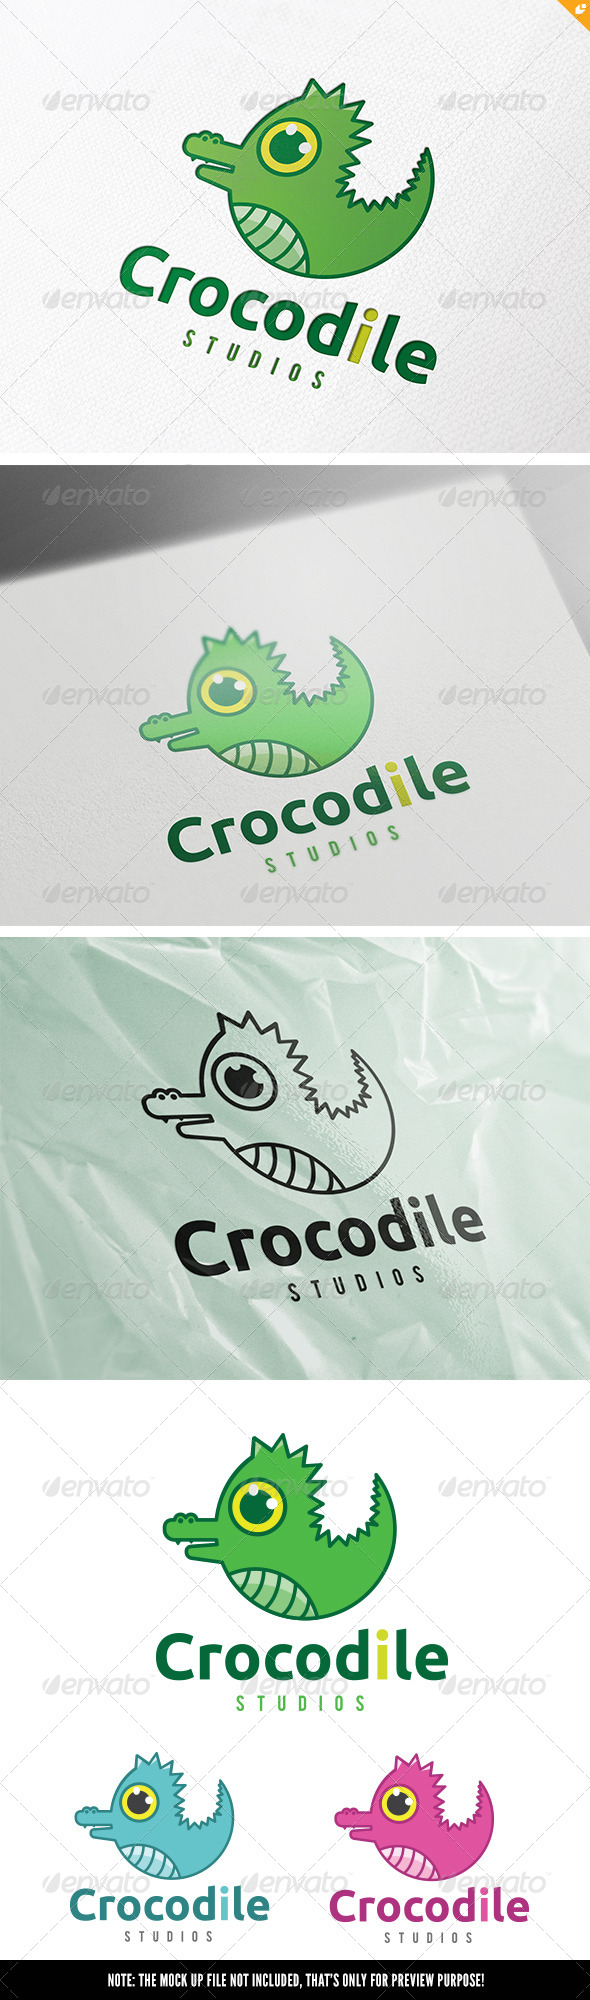 GraphicRiver Crocodile Studios 8339292